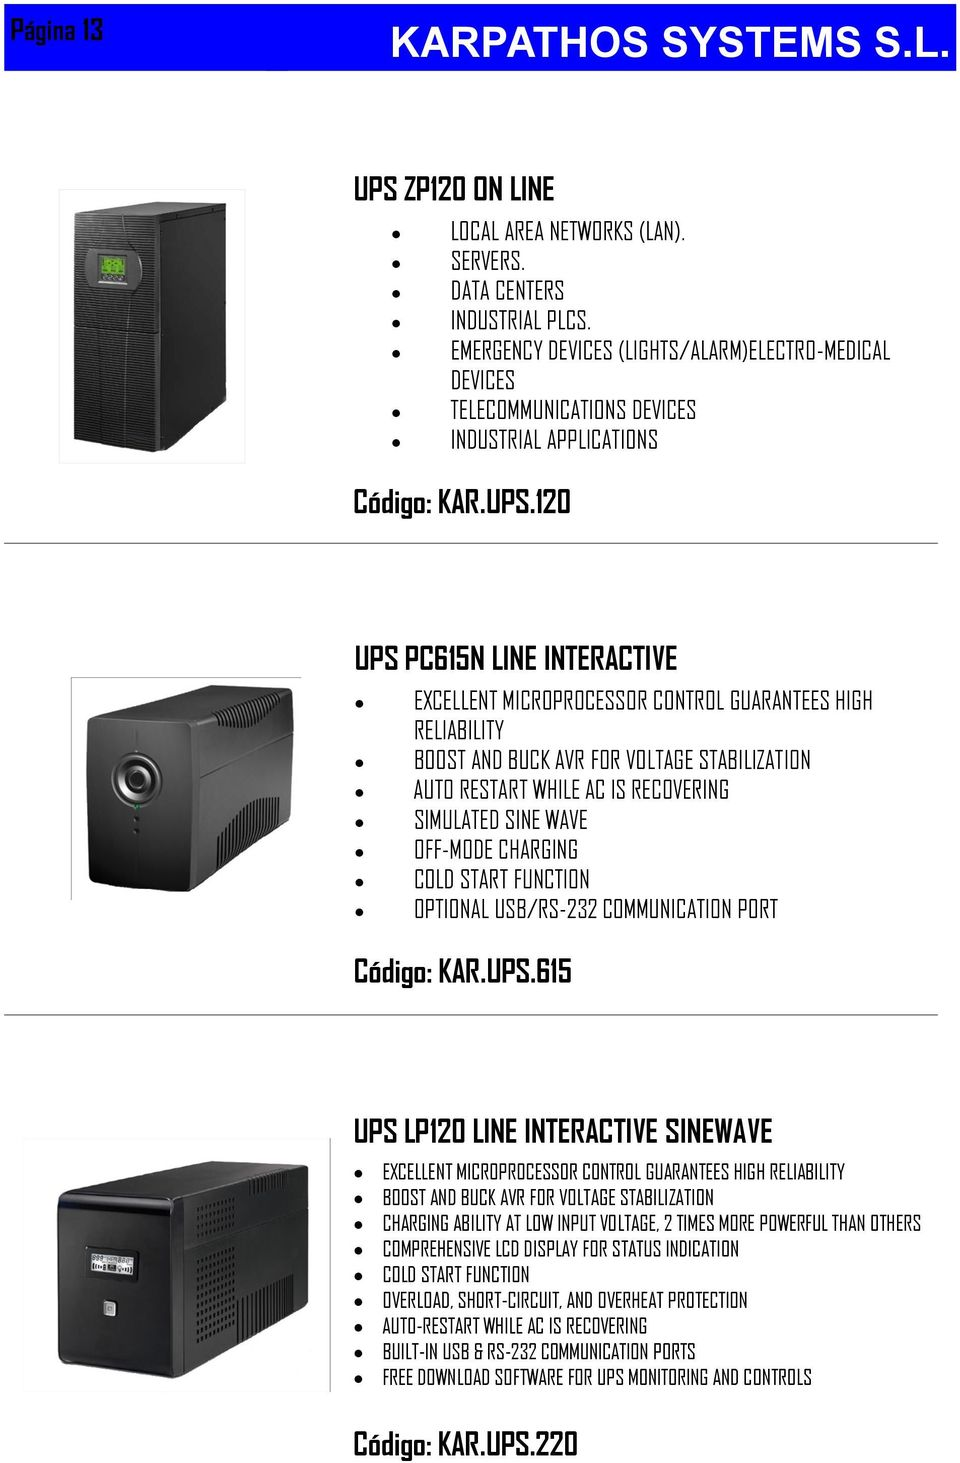 120 UPS PC615N LINE INTERACTIVE EXCELLENT MICROPROCESSOR CONTROL GUARANTEES HIGH RELIABILITY BOOST AND BUCK AVR FOR VOLTAGE STABILIZATION AUTO RESTART WHILE AC IS RECOVERING SIMULATED SINE WAVE